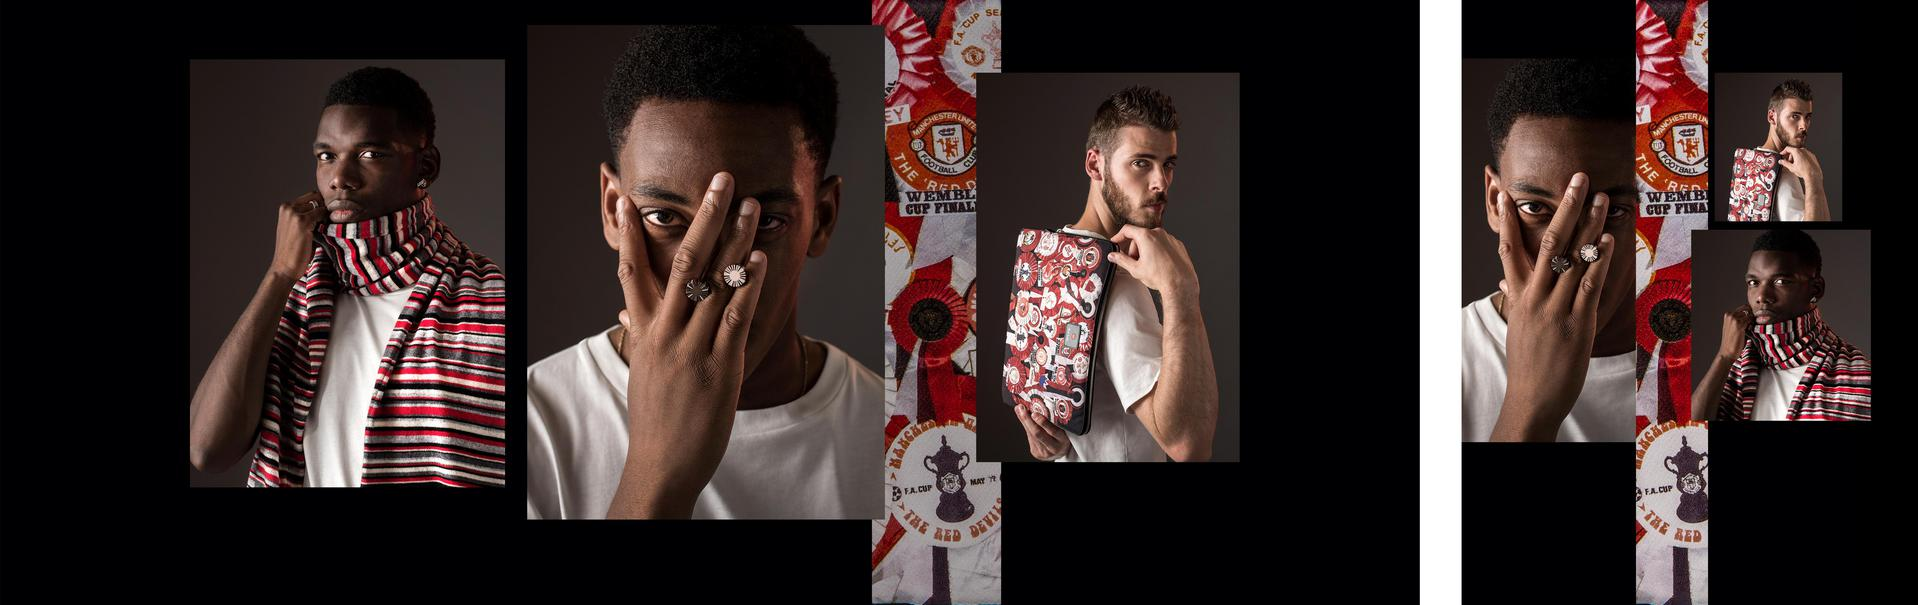 Manchester United players model Paul Smith accessories